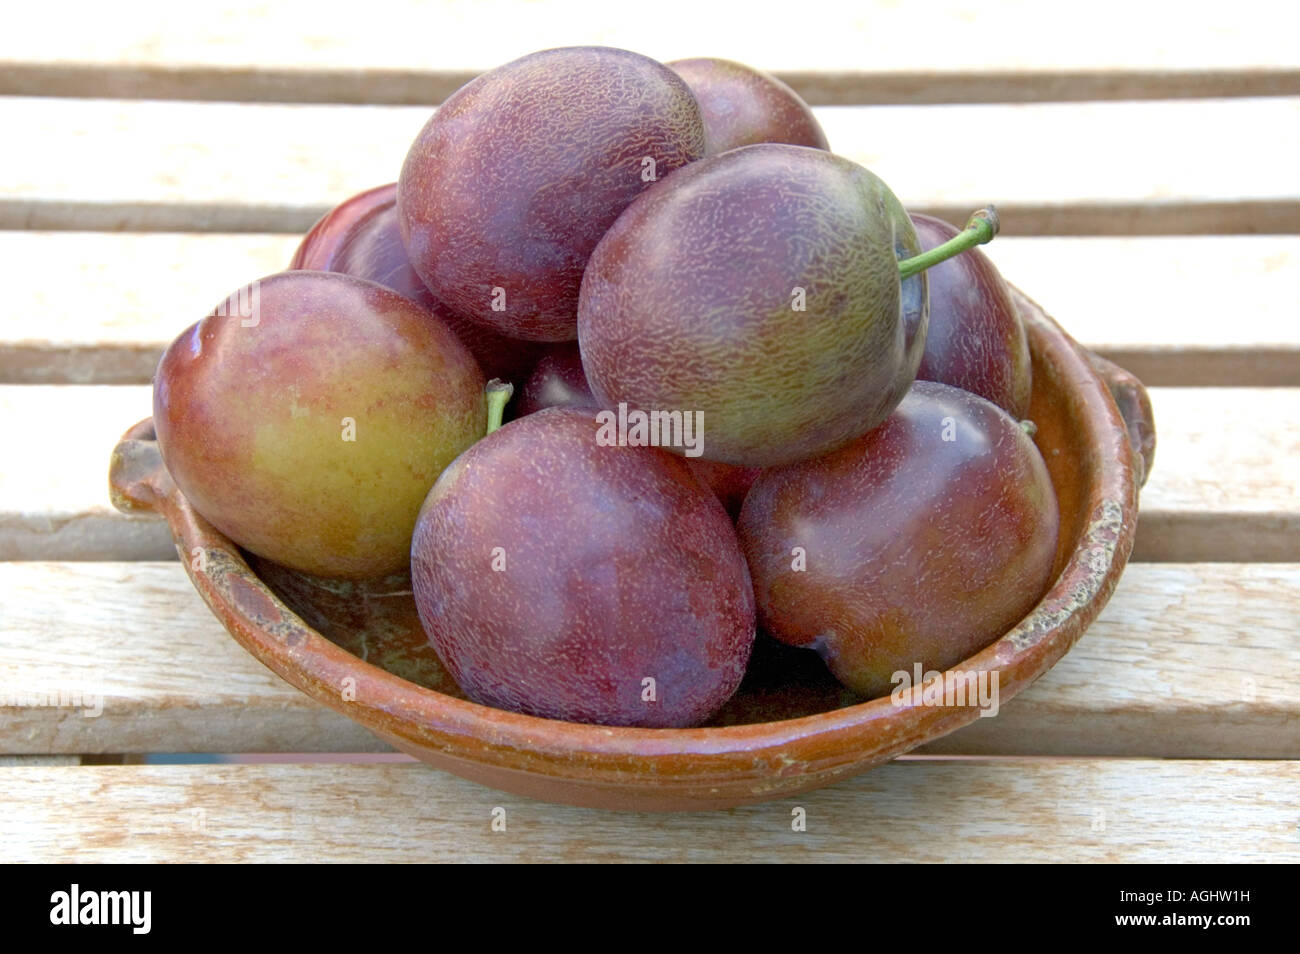 Marjorie s Seedling plums in bowl - Stock Image